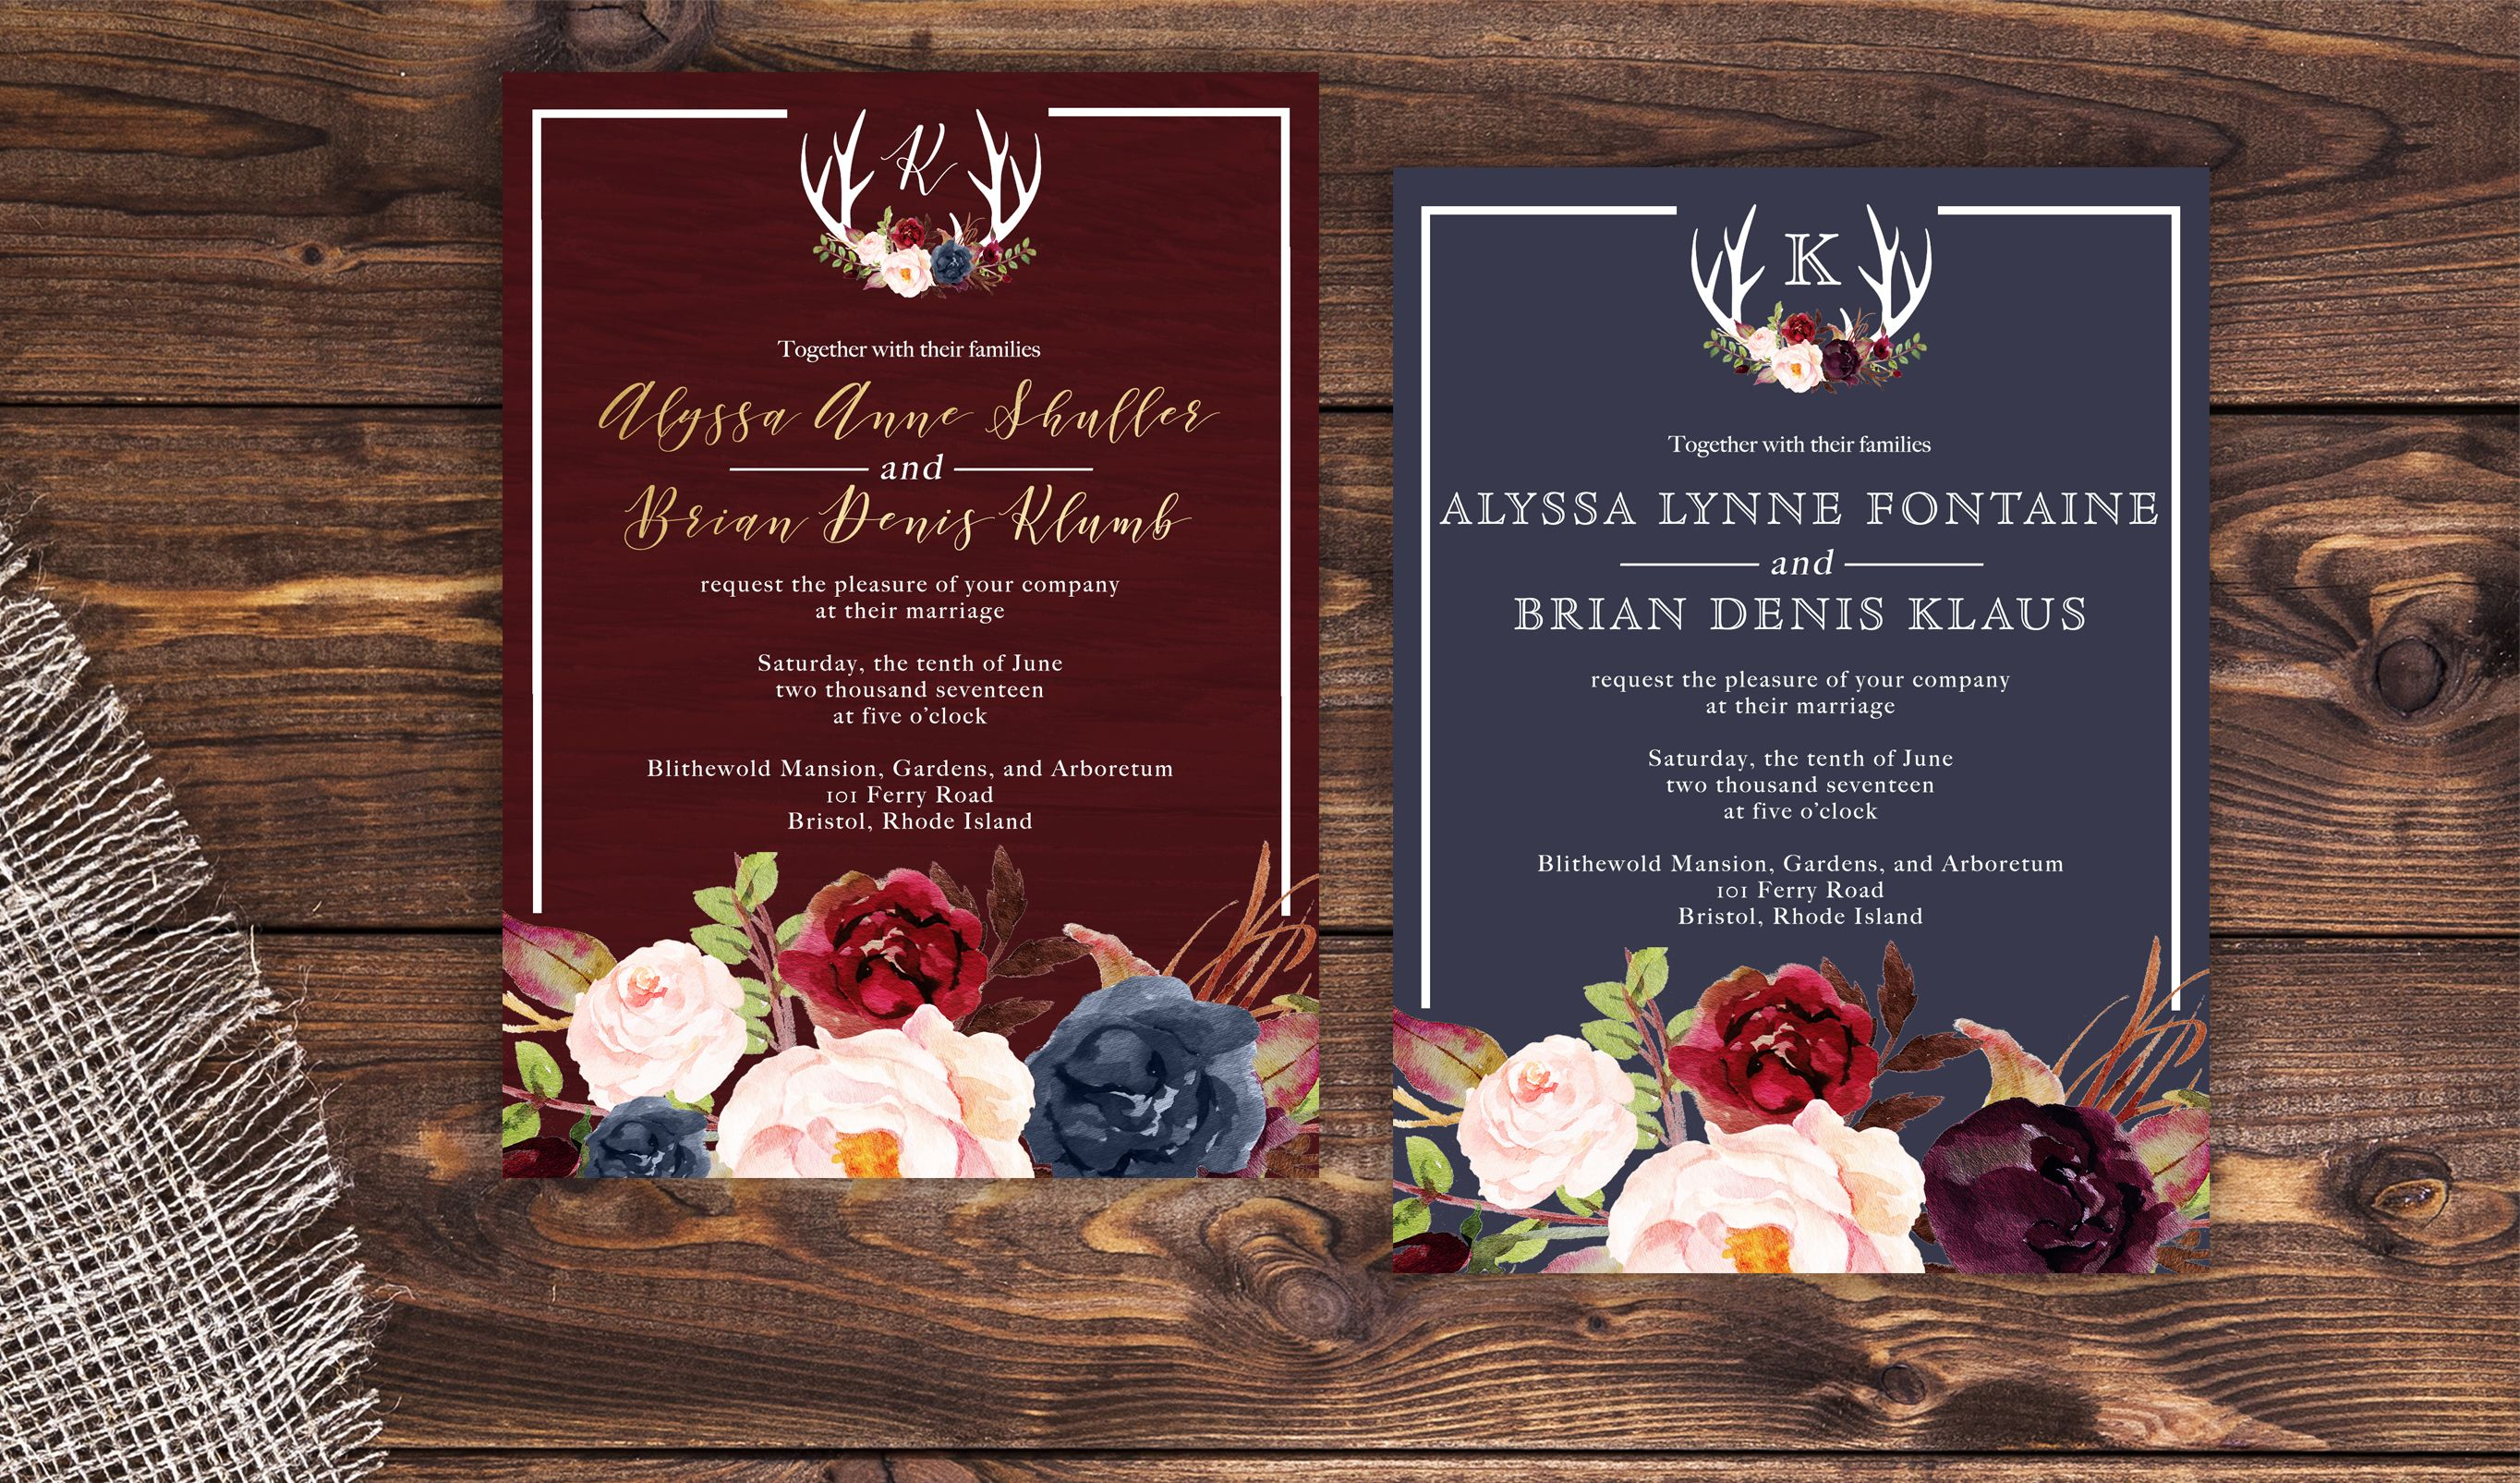 Outdoor Themed Wedding Invitations: Navy And Marsala Wedding Invitation. Rustic Wedding